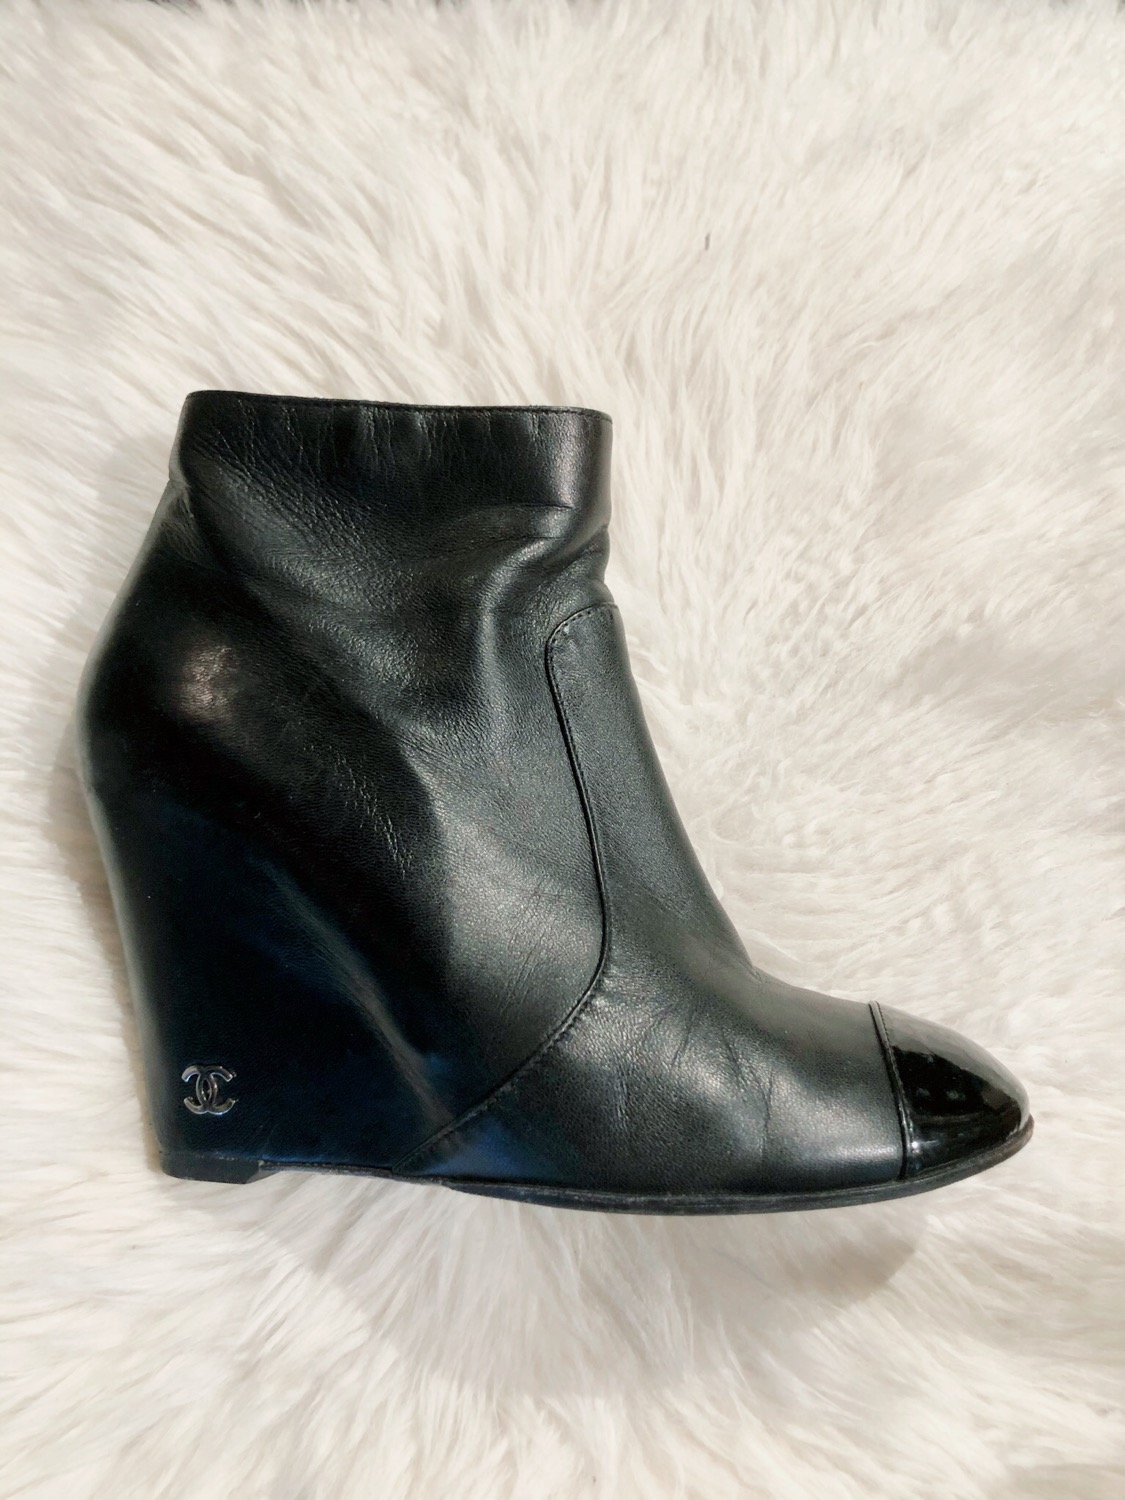 Thumbnail: Chanel CC Cap-Toe Wedge Booties